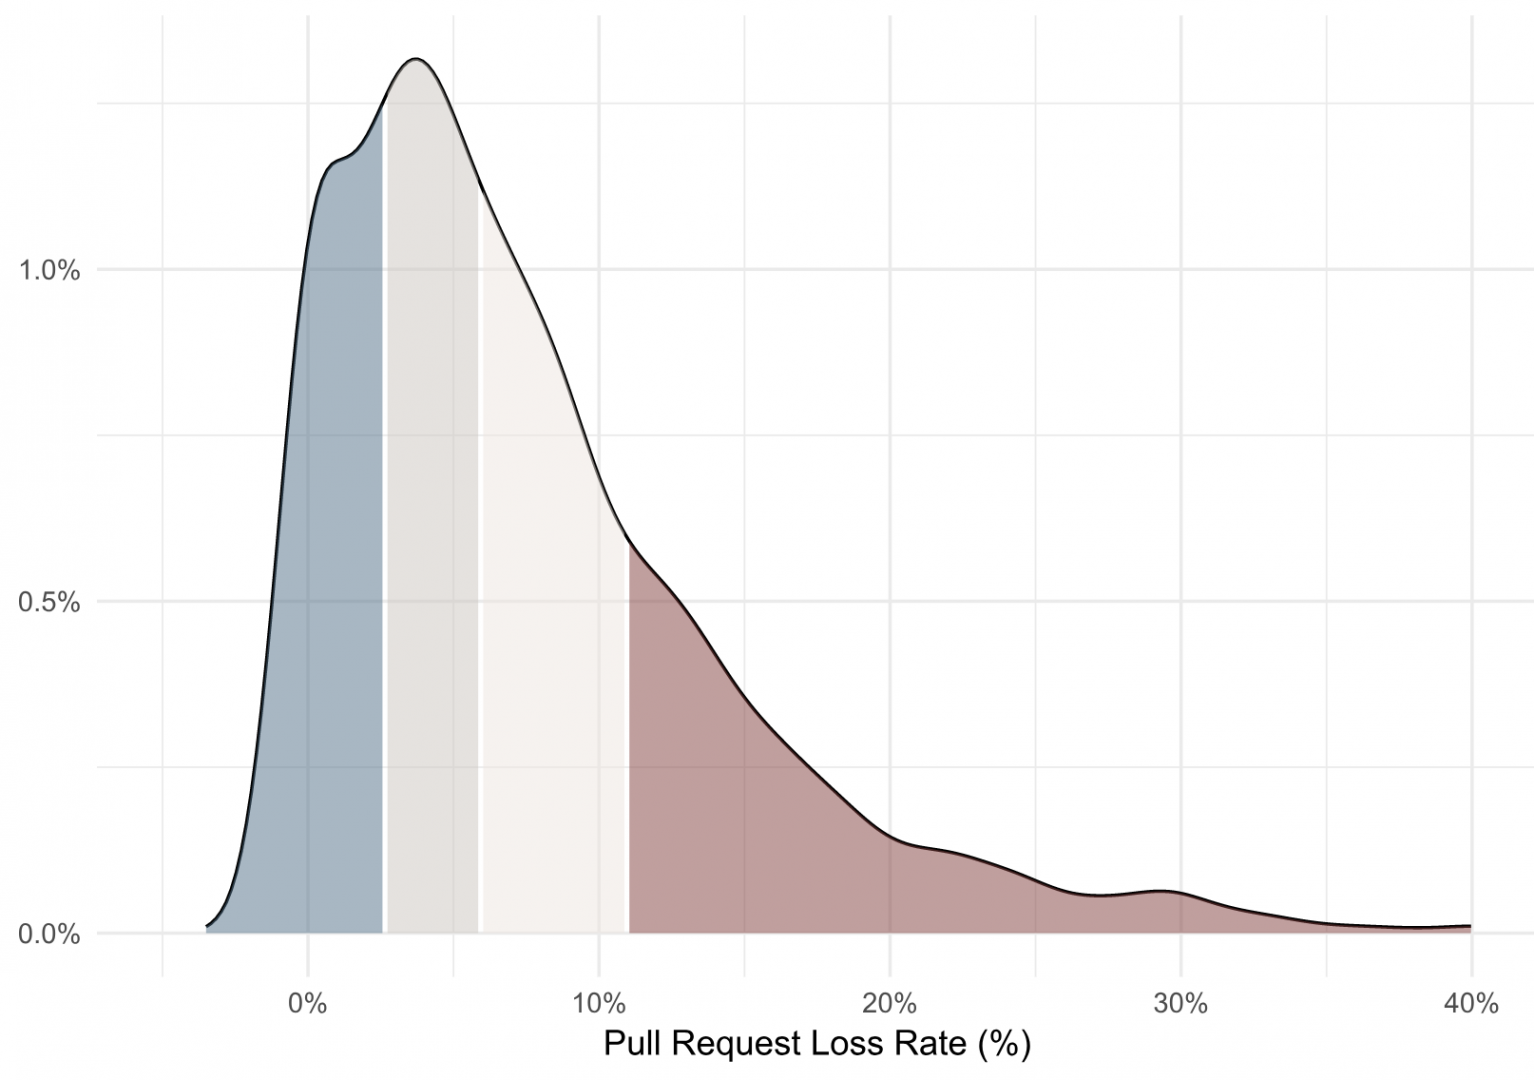 Pull Request Loss Rate